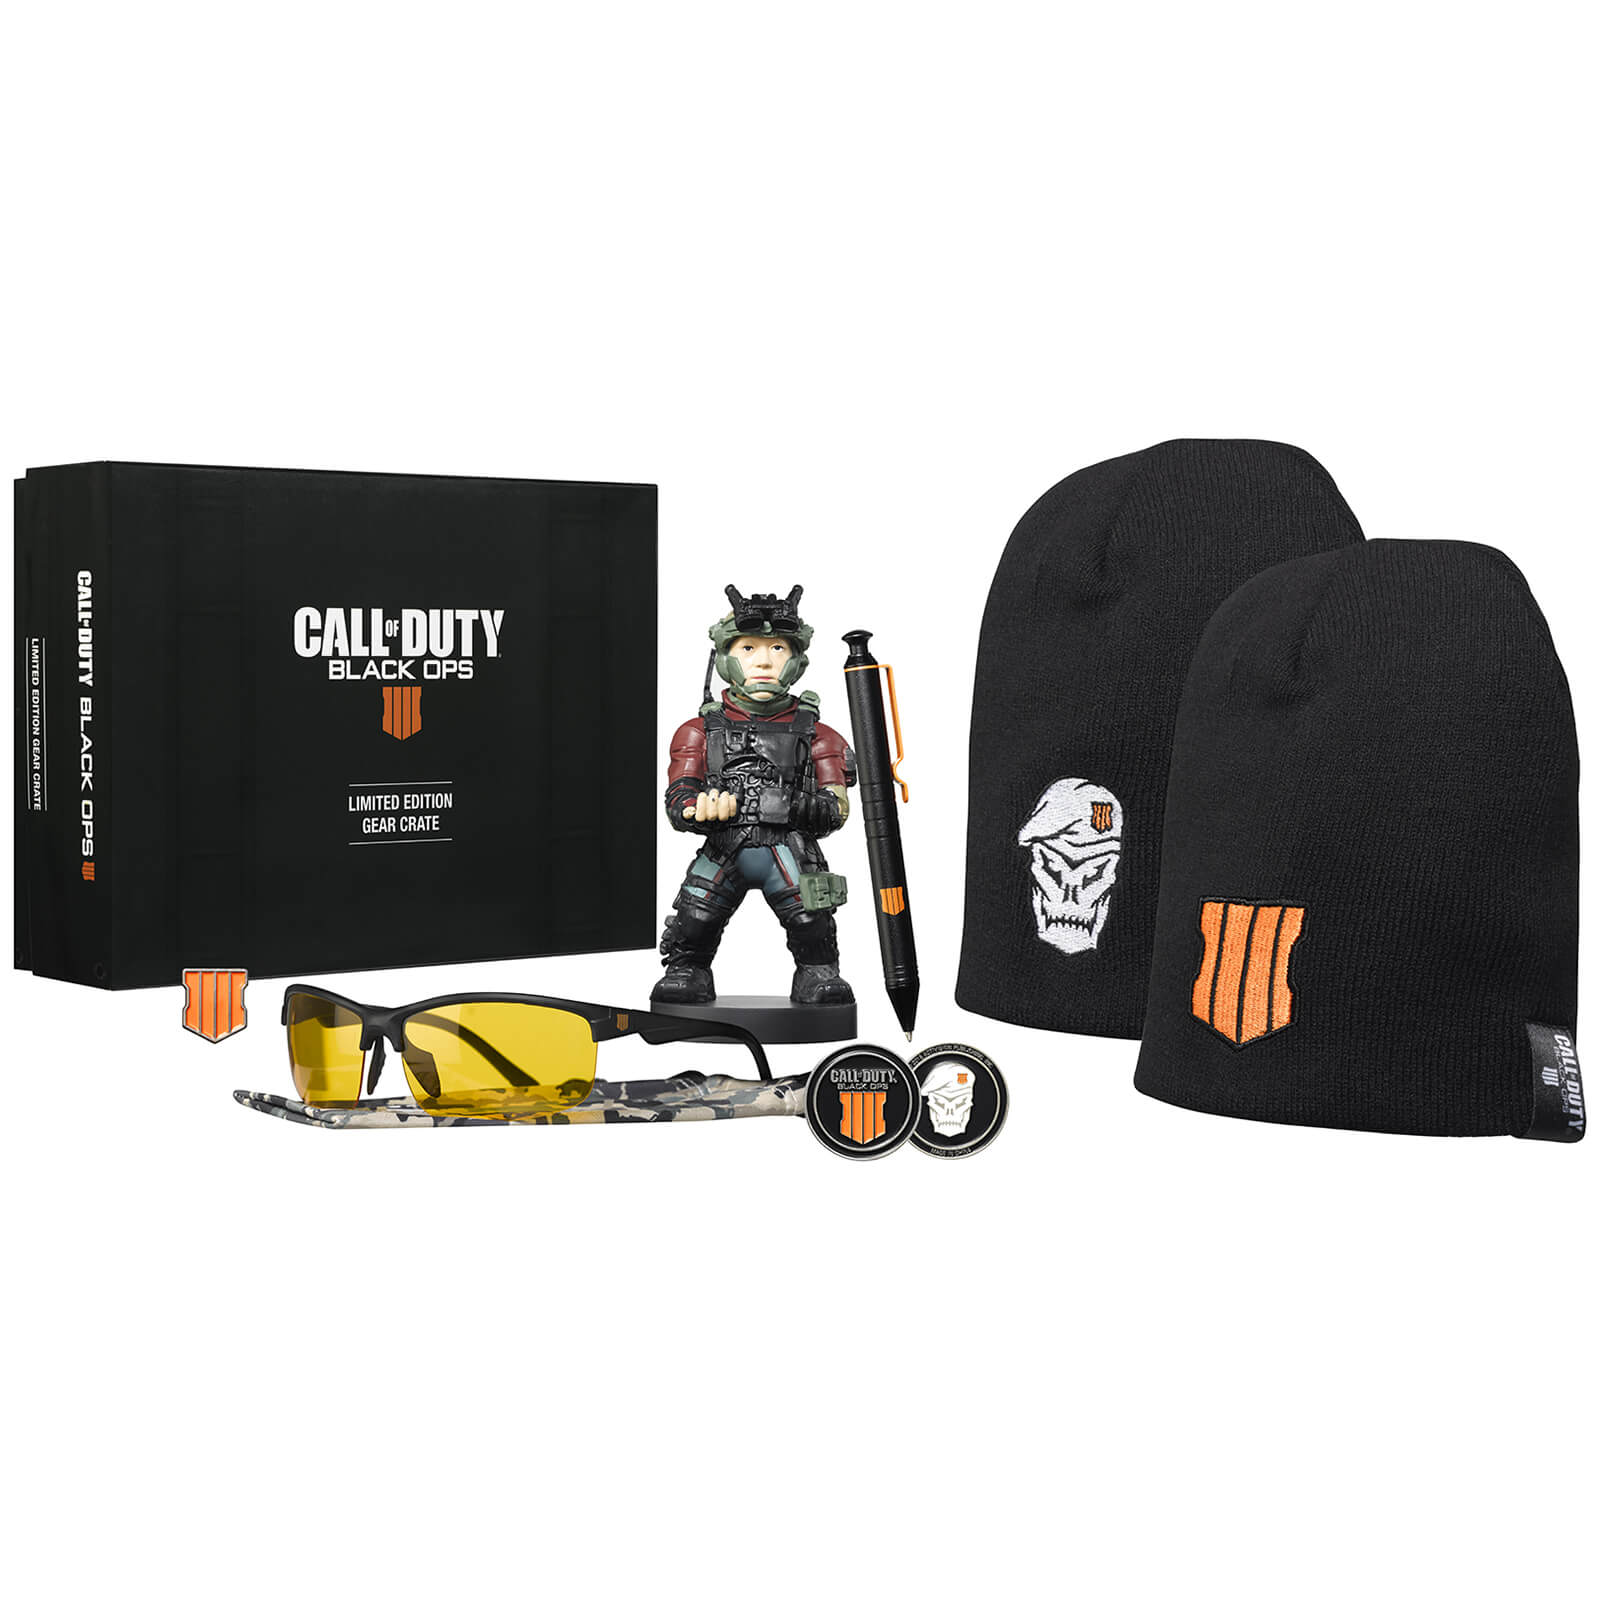 Call of Duty Black Ops 4 Limited Edition Gear Crate